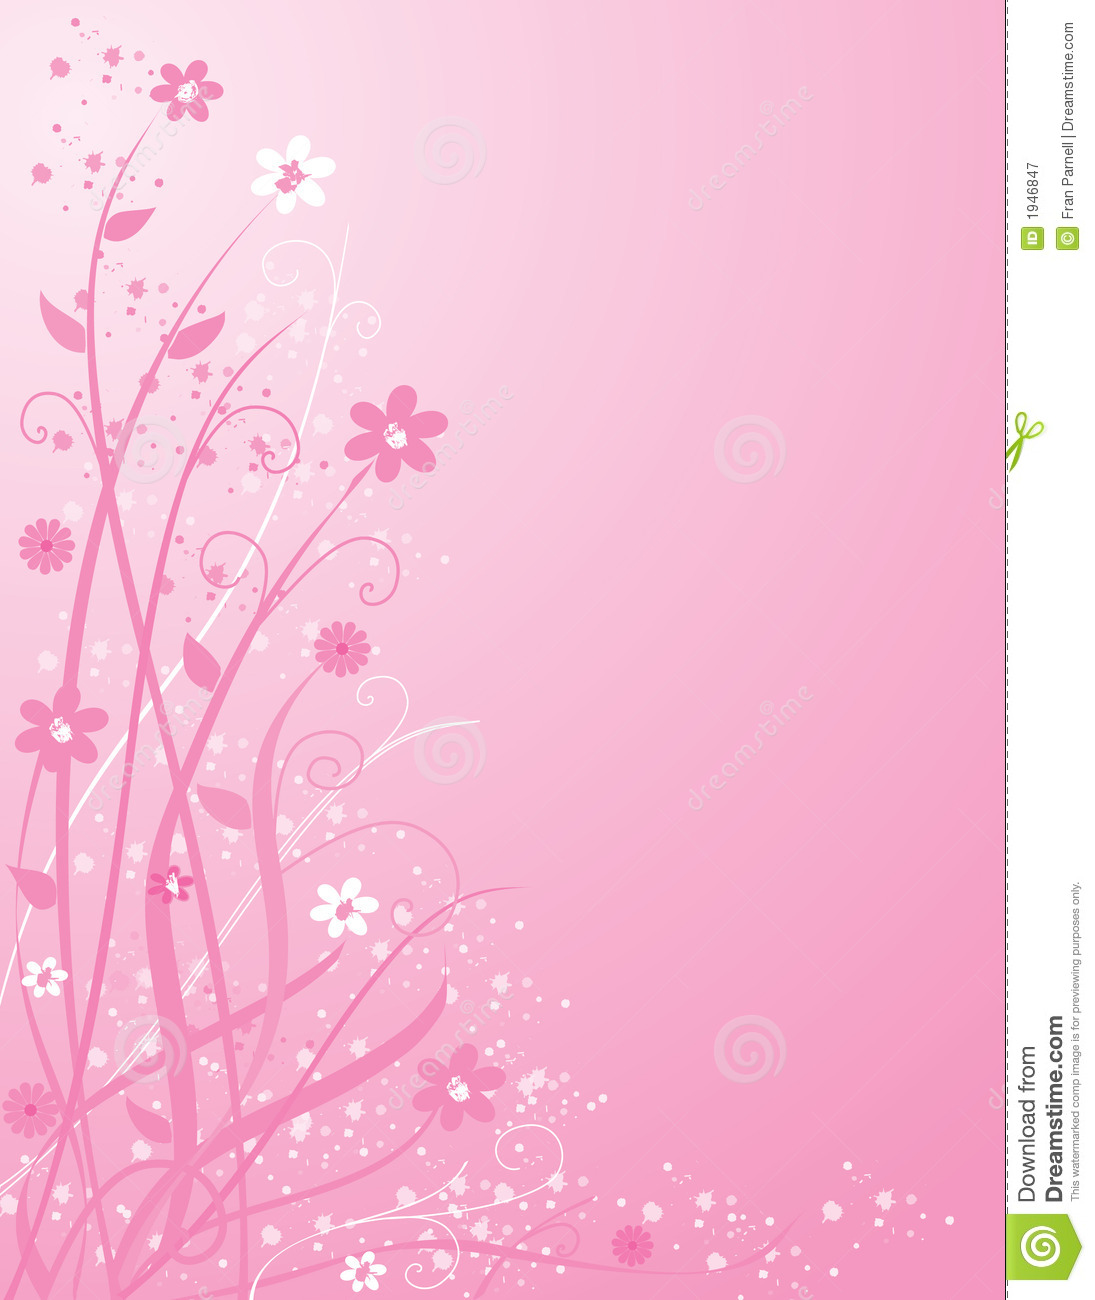 Pink floral background stock vector illustration of valentine 1946847 pink floral background mightylinksfo Choice Image